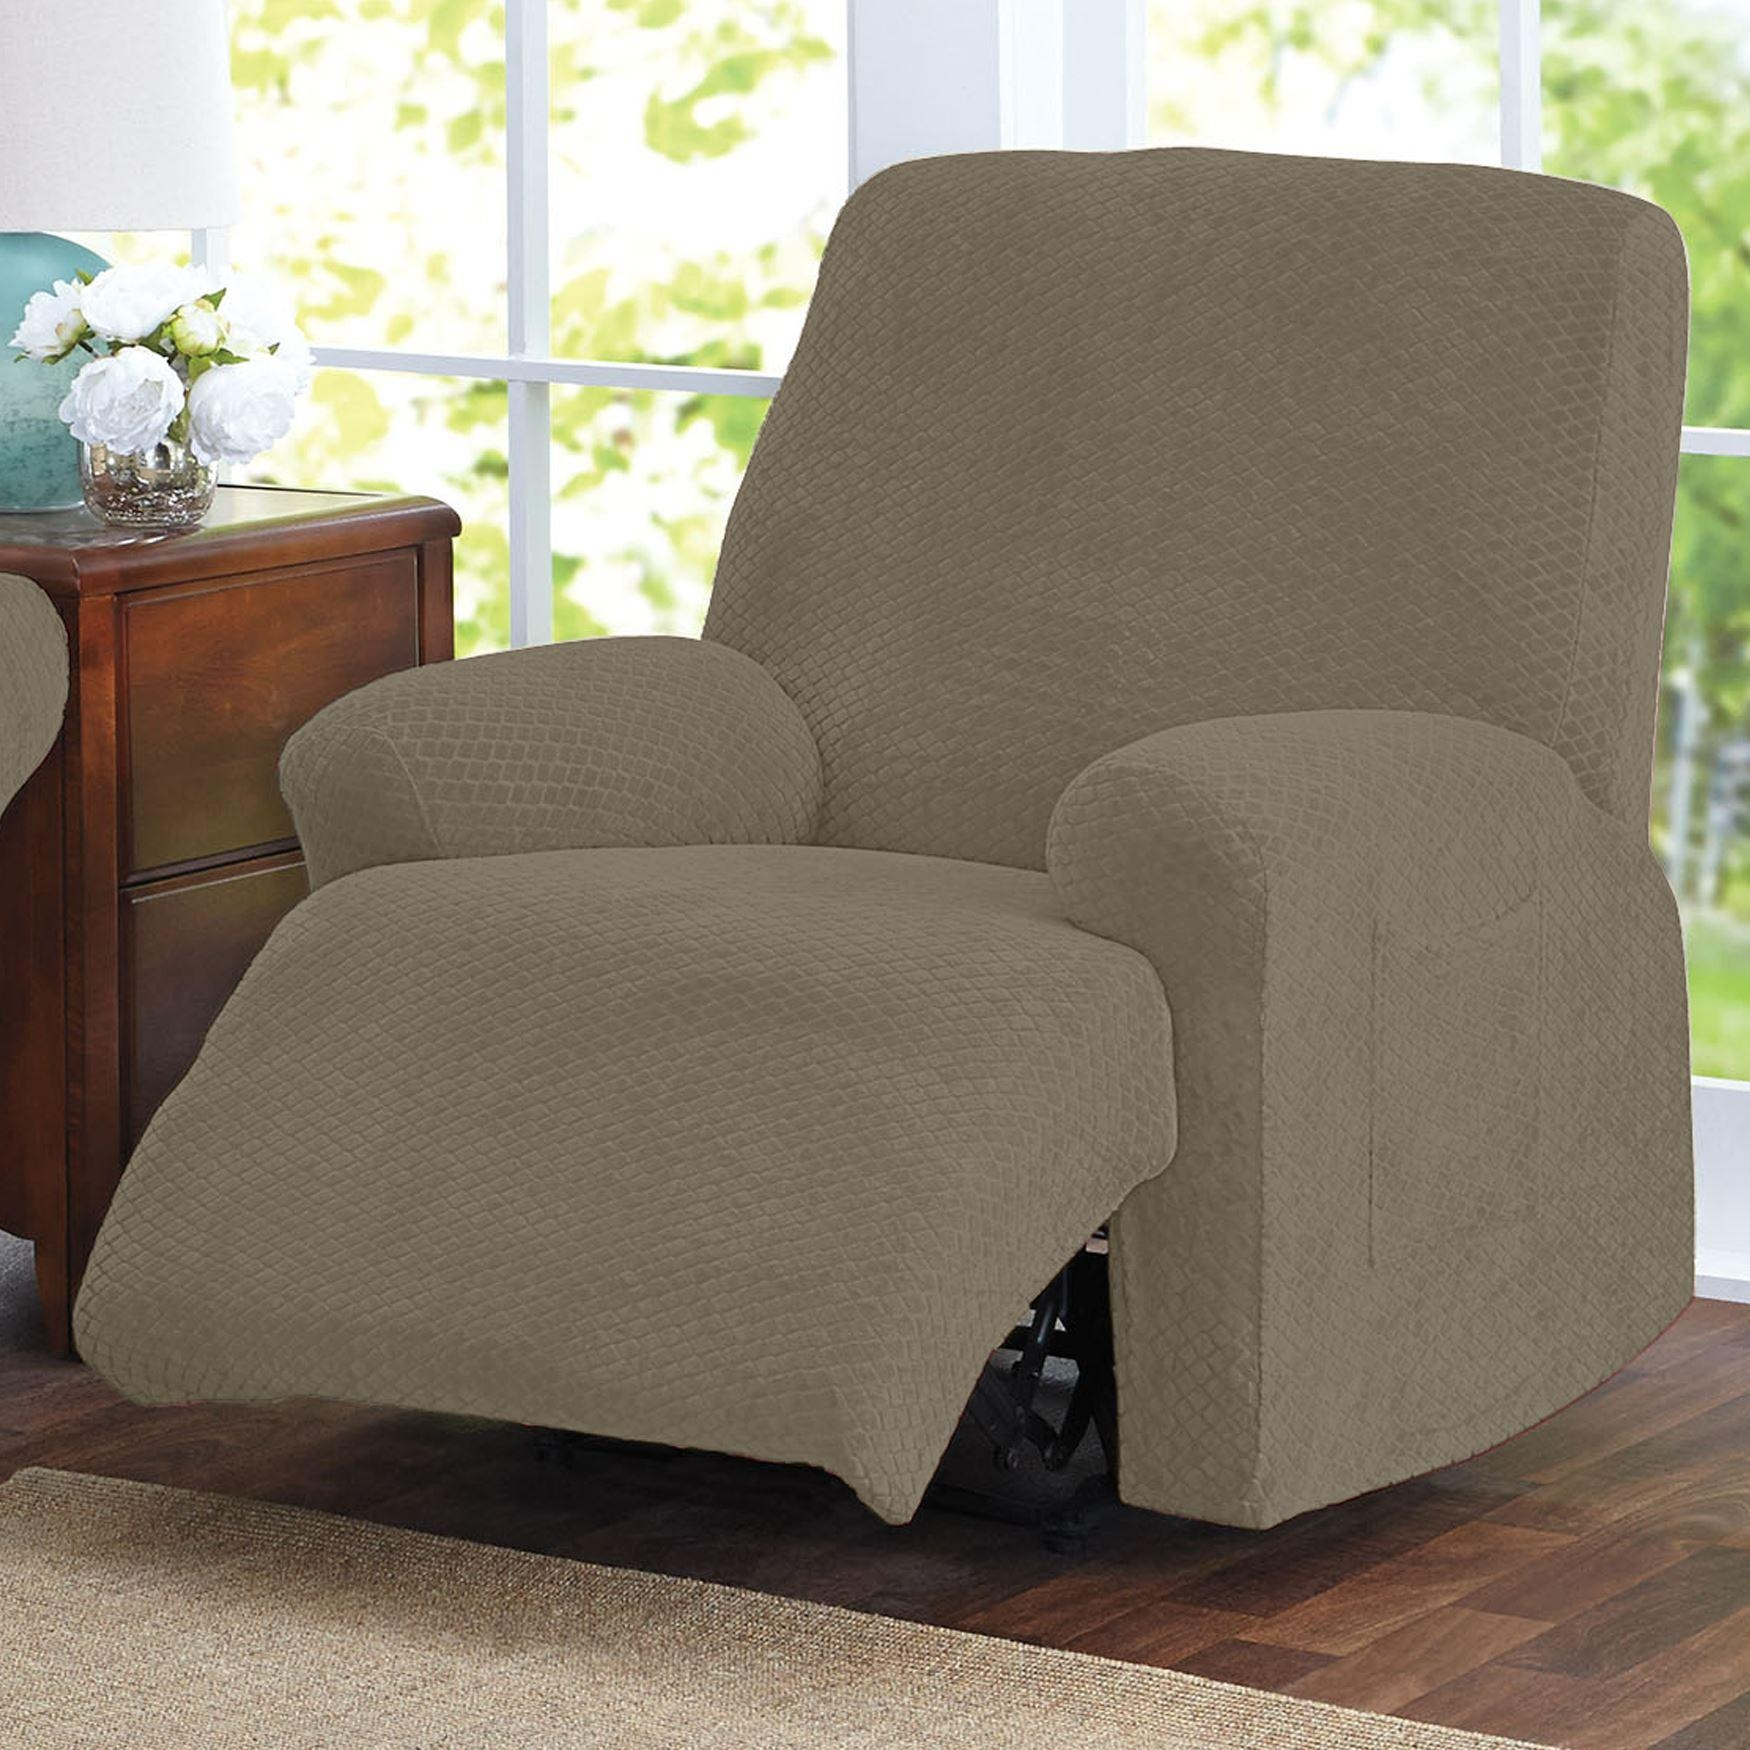 Brylanehome® Studio Stretch Diamond Recliner Slipcover | Recliner Within Stretch Covers For Recliners (Image 3 of 20)